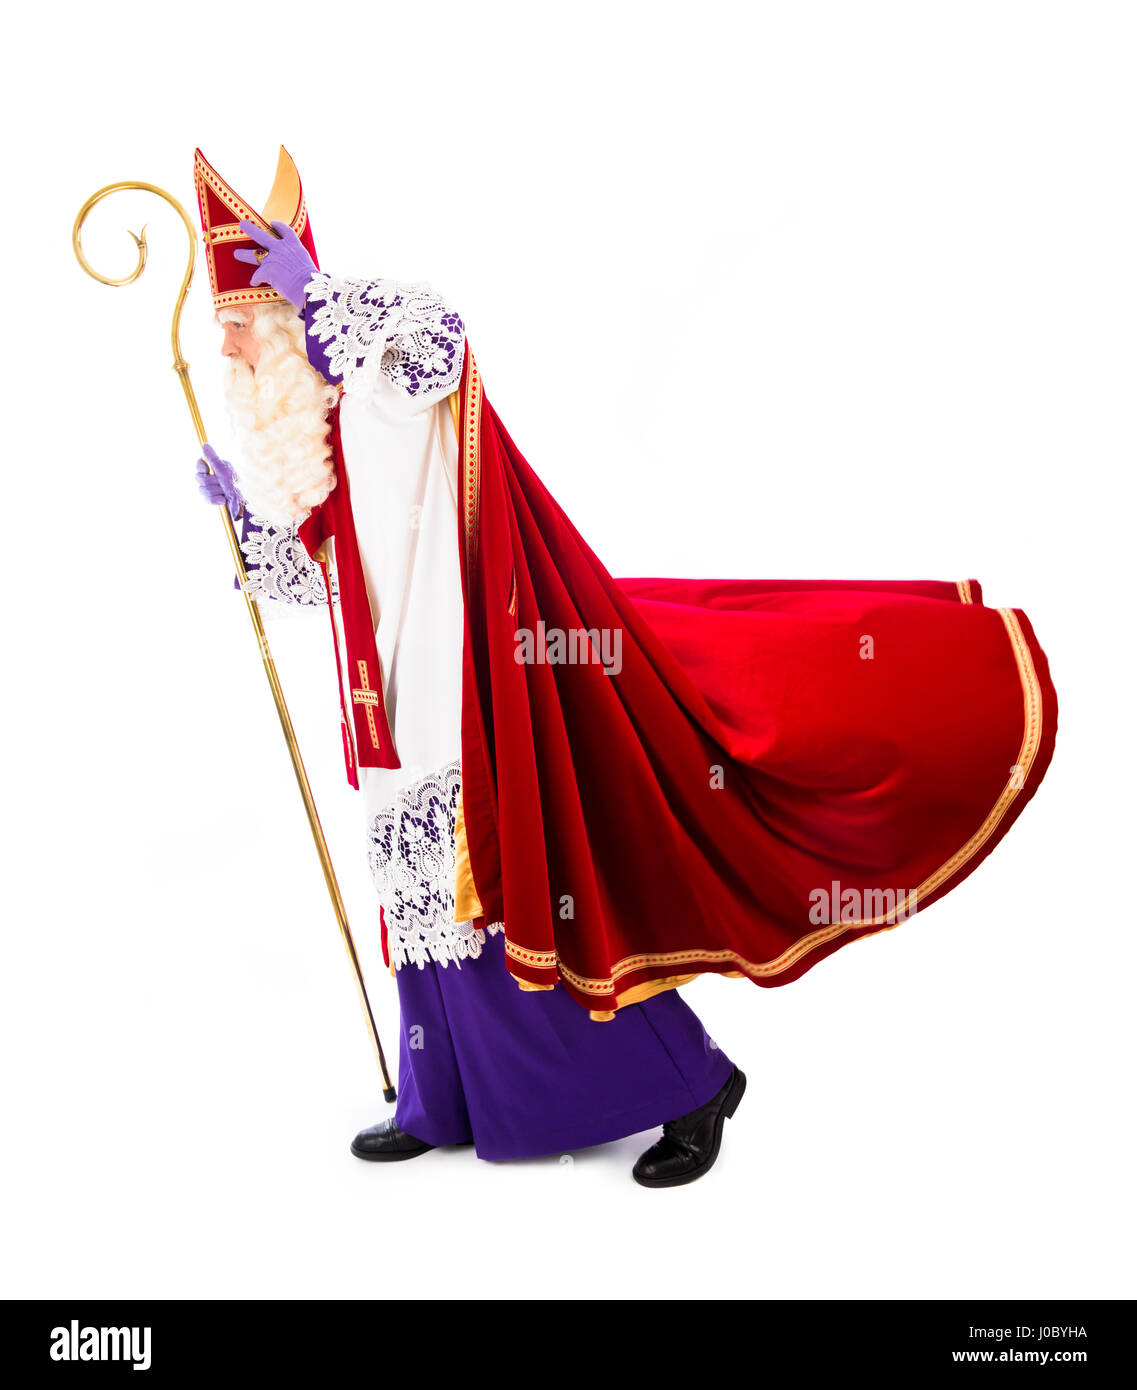 159fb5f2e05db Sinterklaas holding hat in windy weather. isolated on white background.  Dutch character of Santa Claus